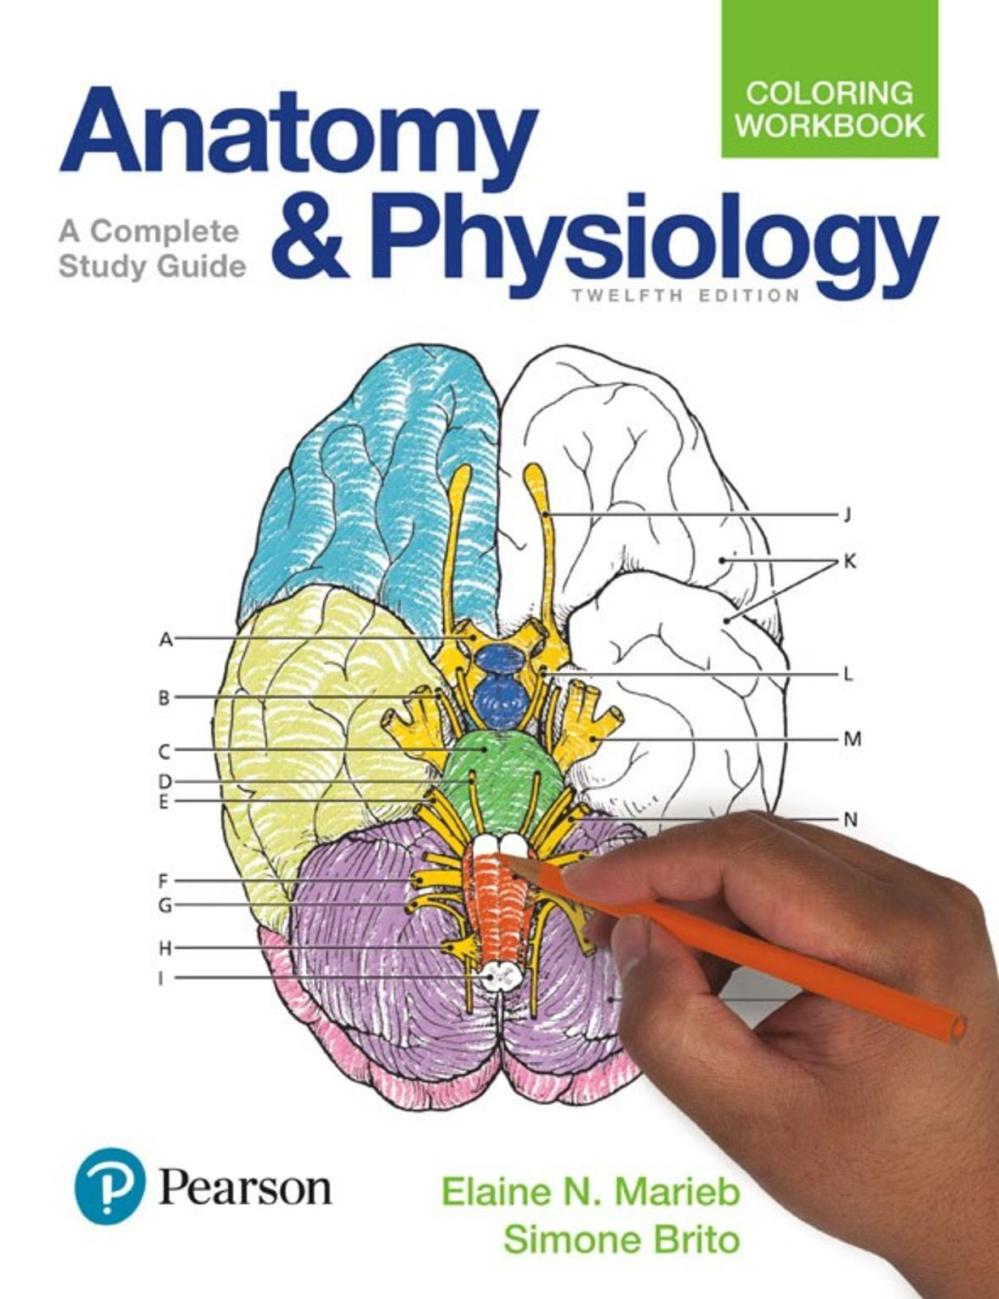 medium resolution of anatomy and physiology coloring workbook a complete study guide 12th edition 2017